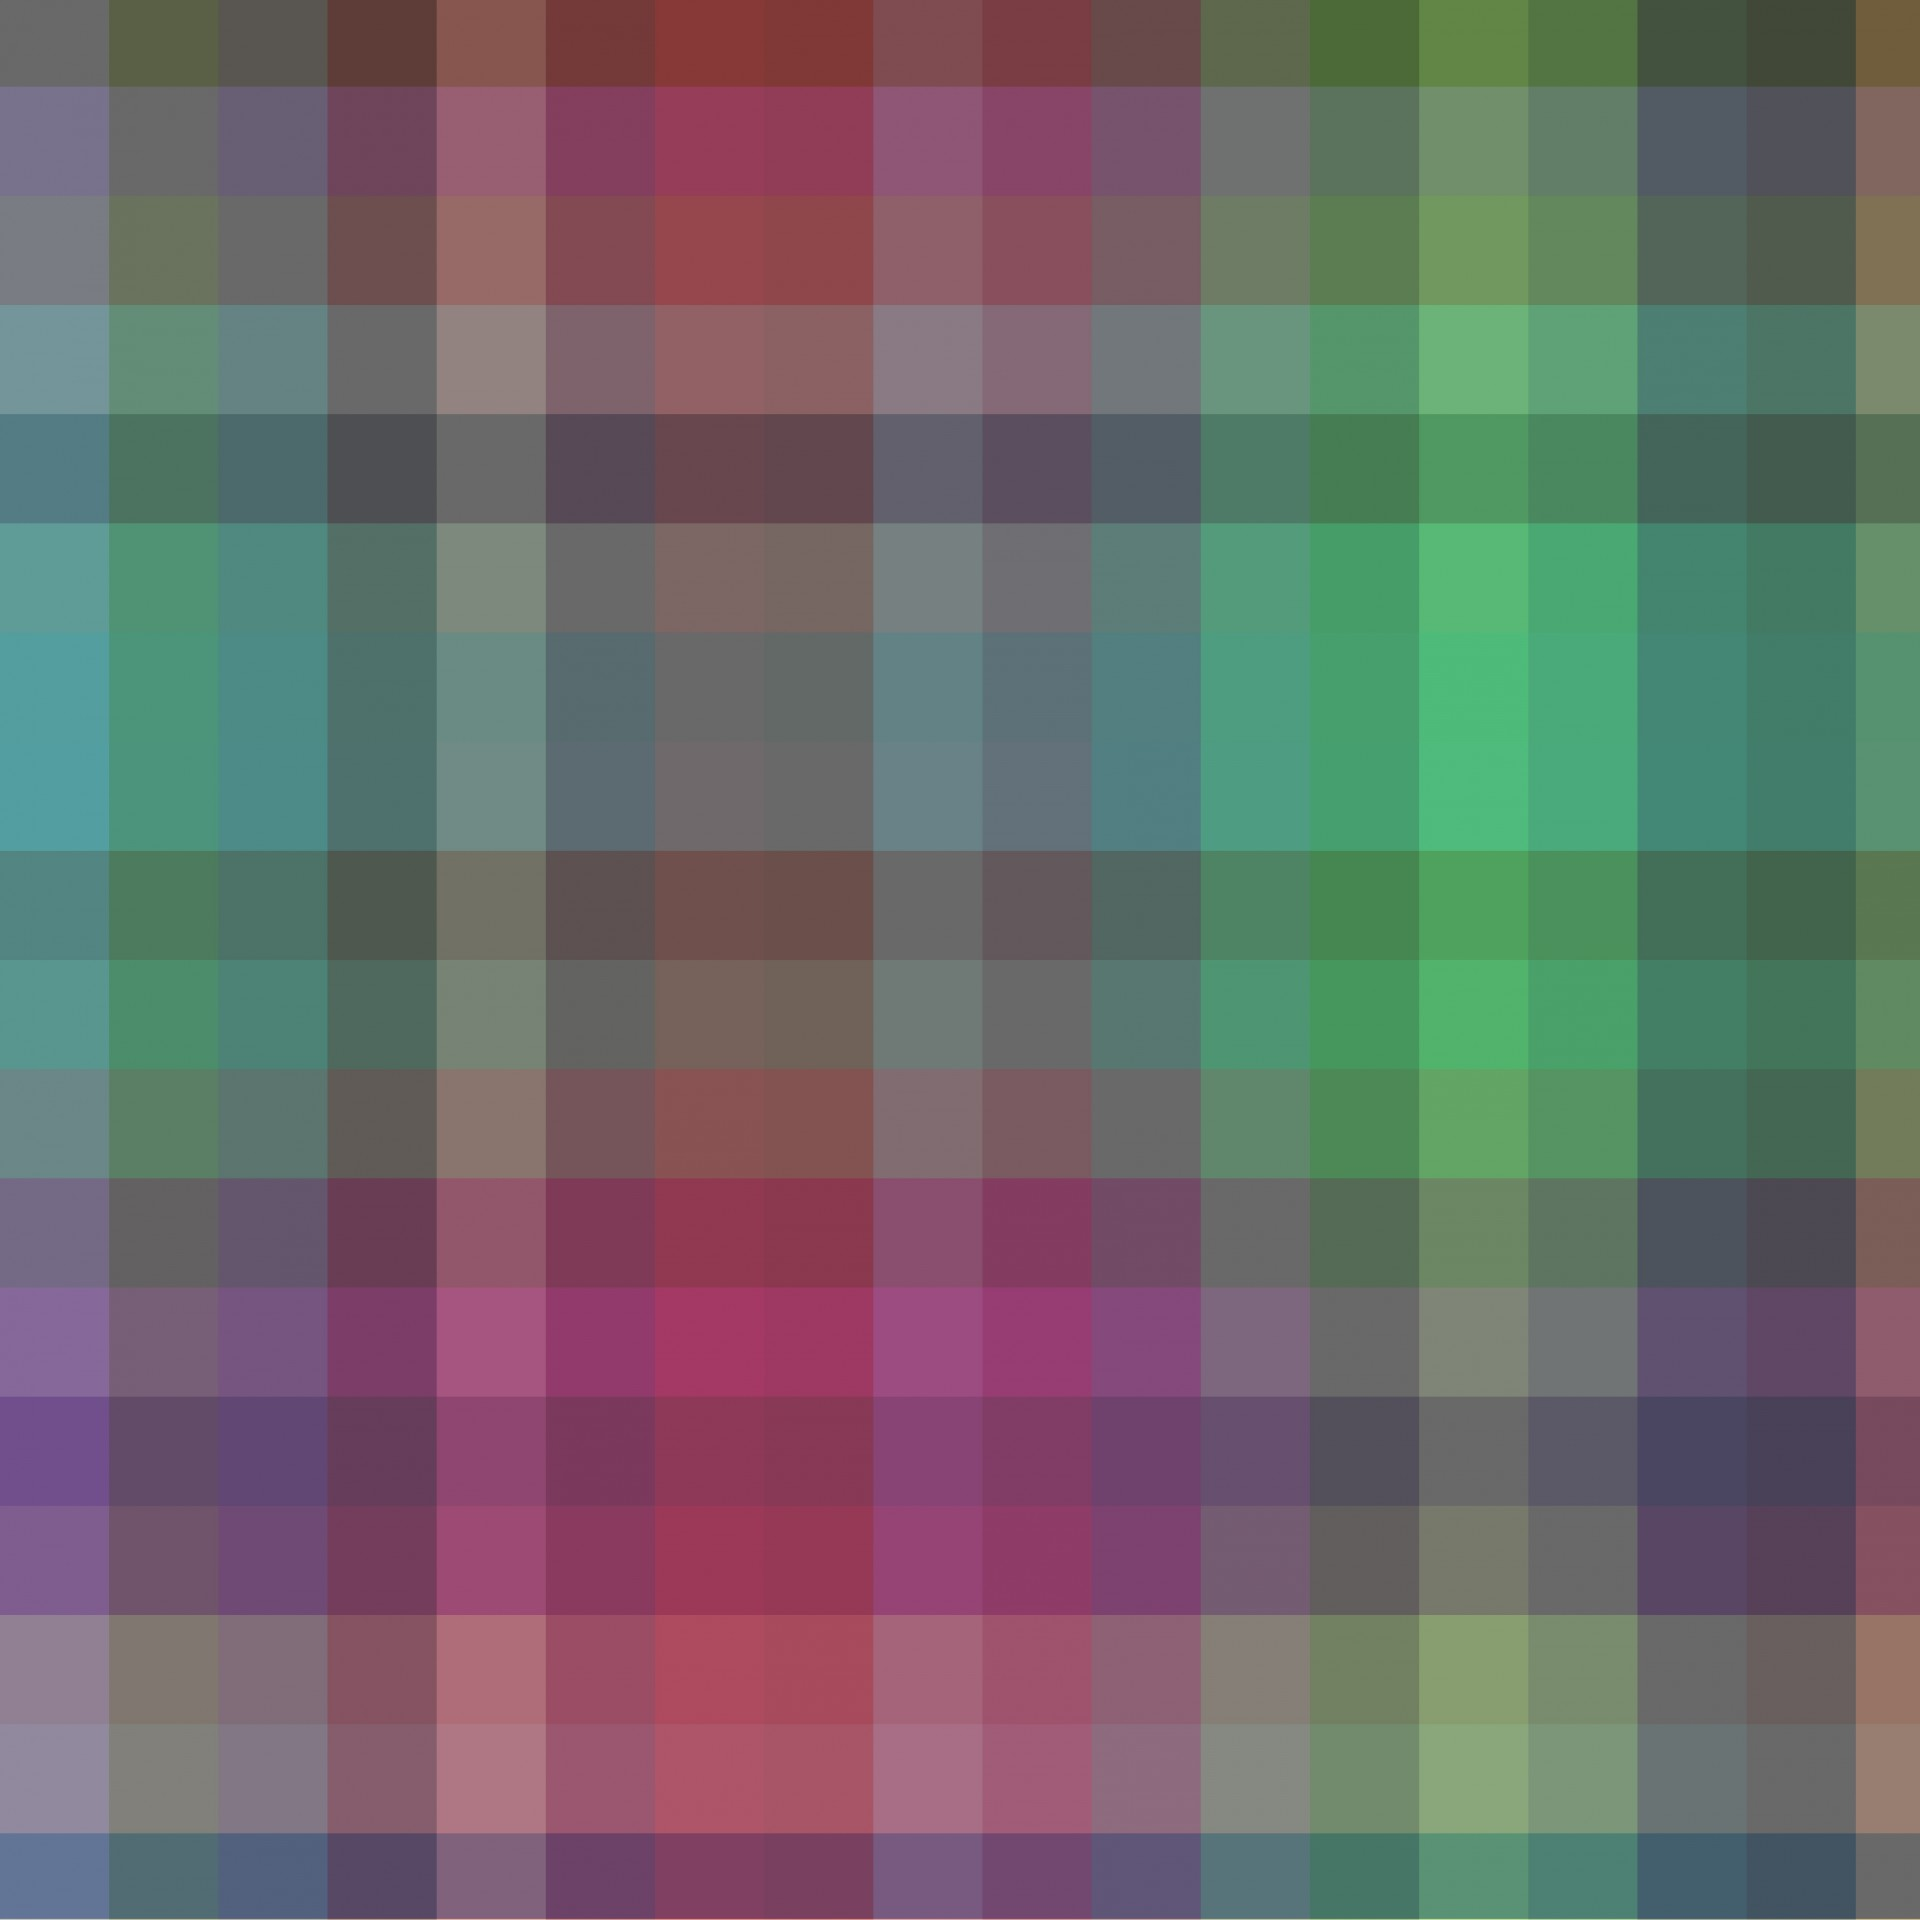 Fall Pictures For Wallpaper Free Tartan Plaid Check Pattern Free Stock Photo Public